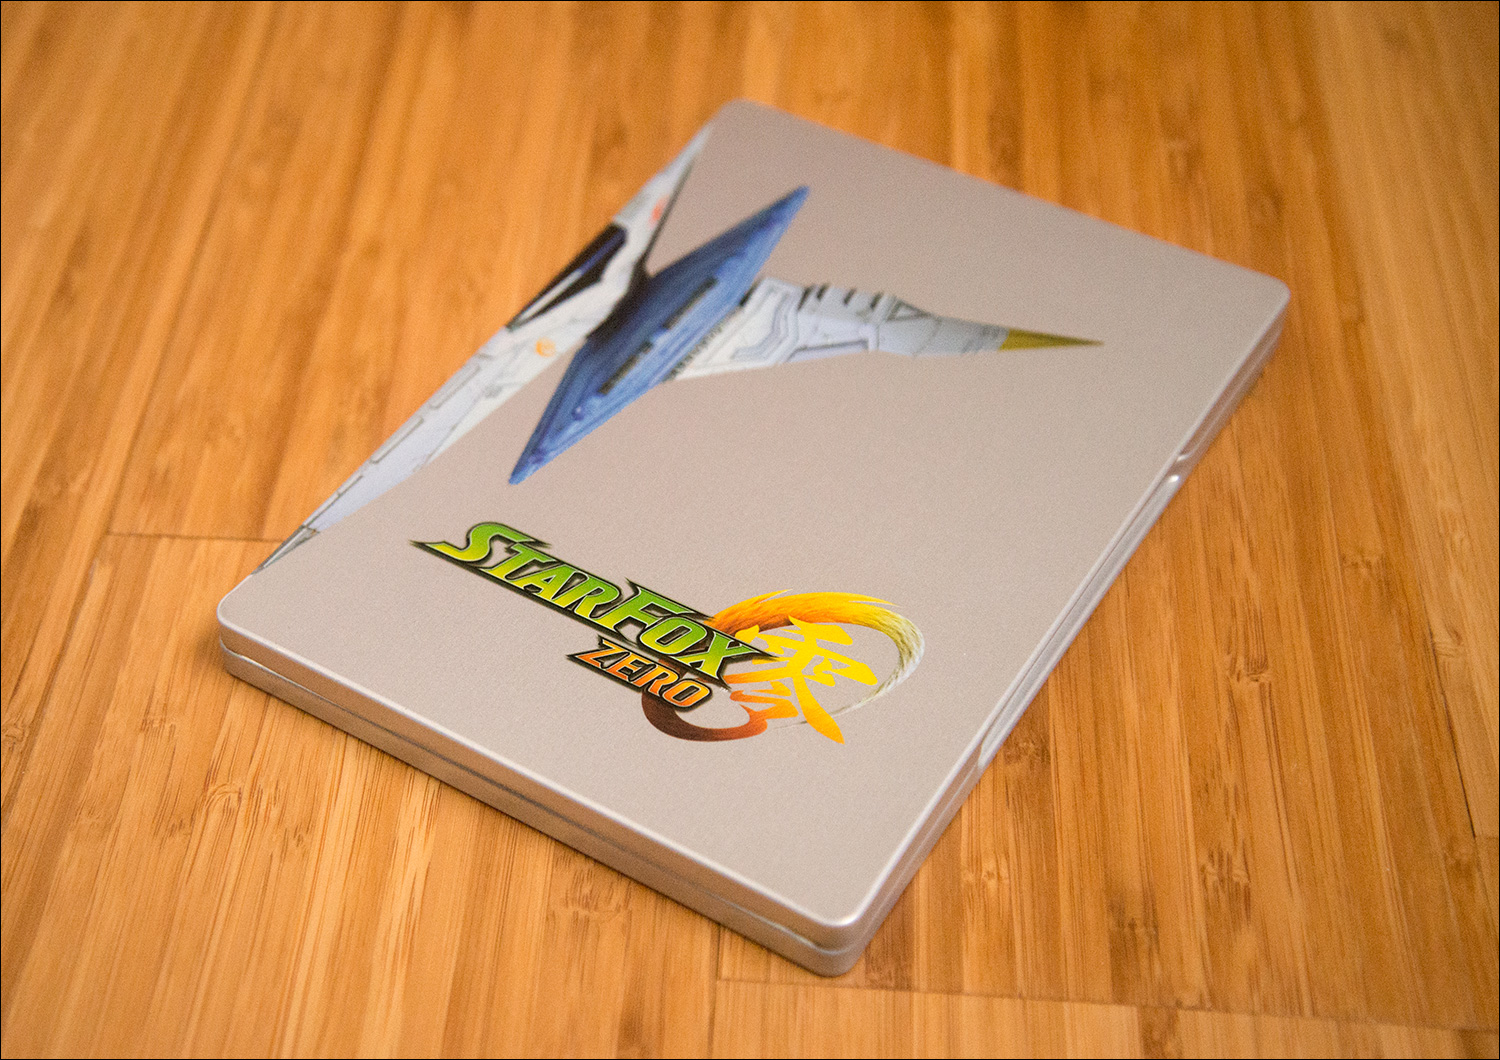 Star-Fox-Zero-First-Print-Edition-Steelbook-Front